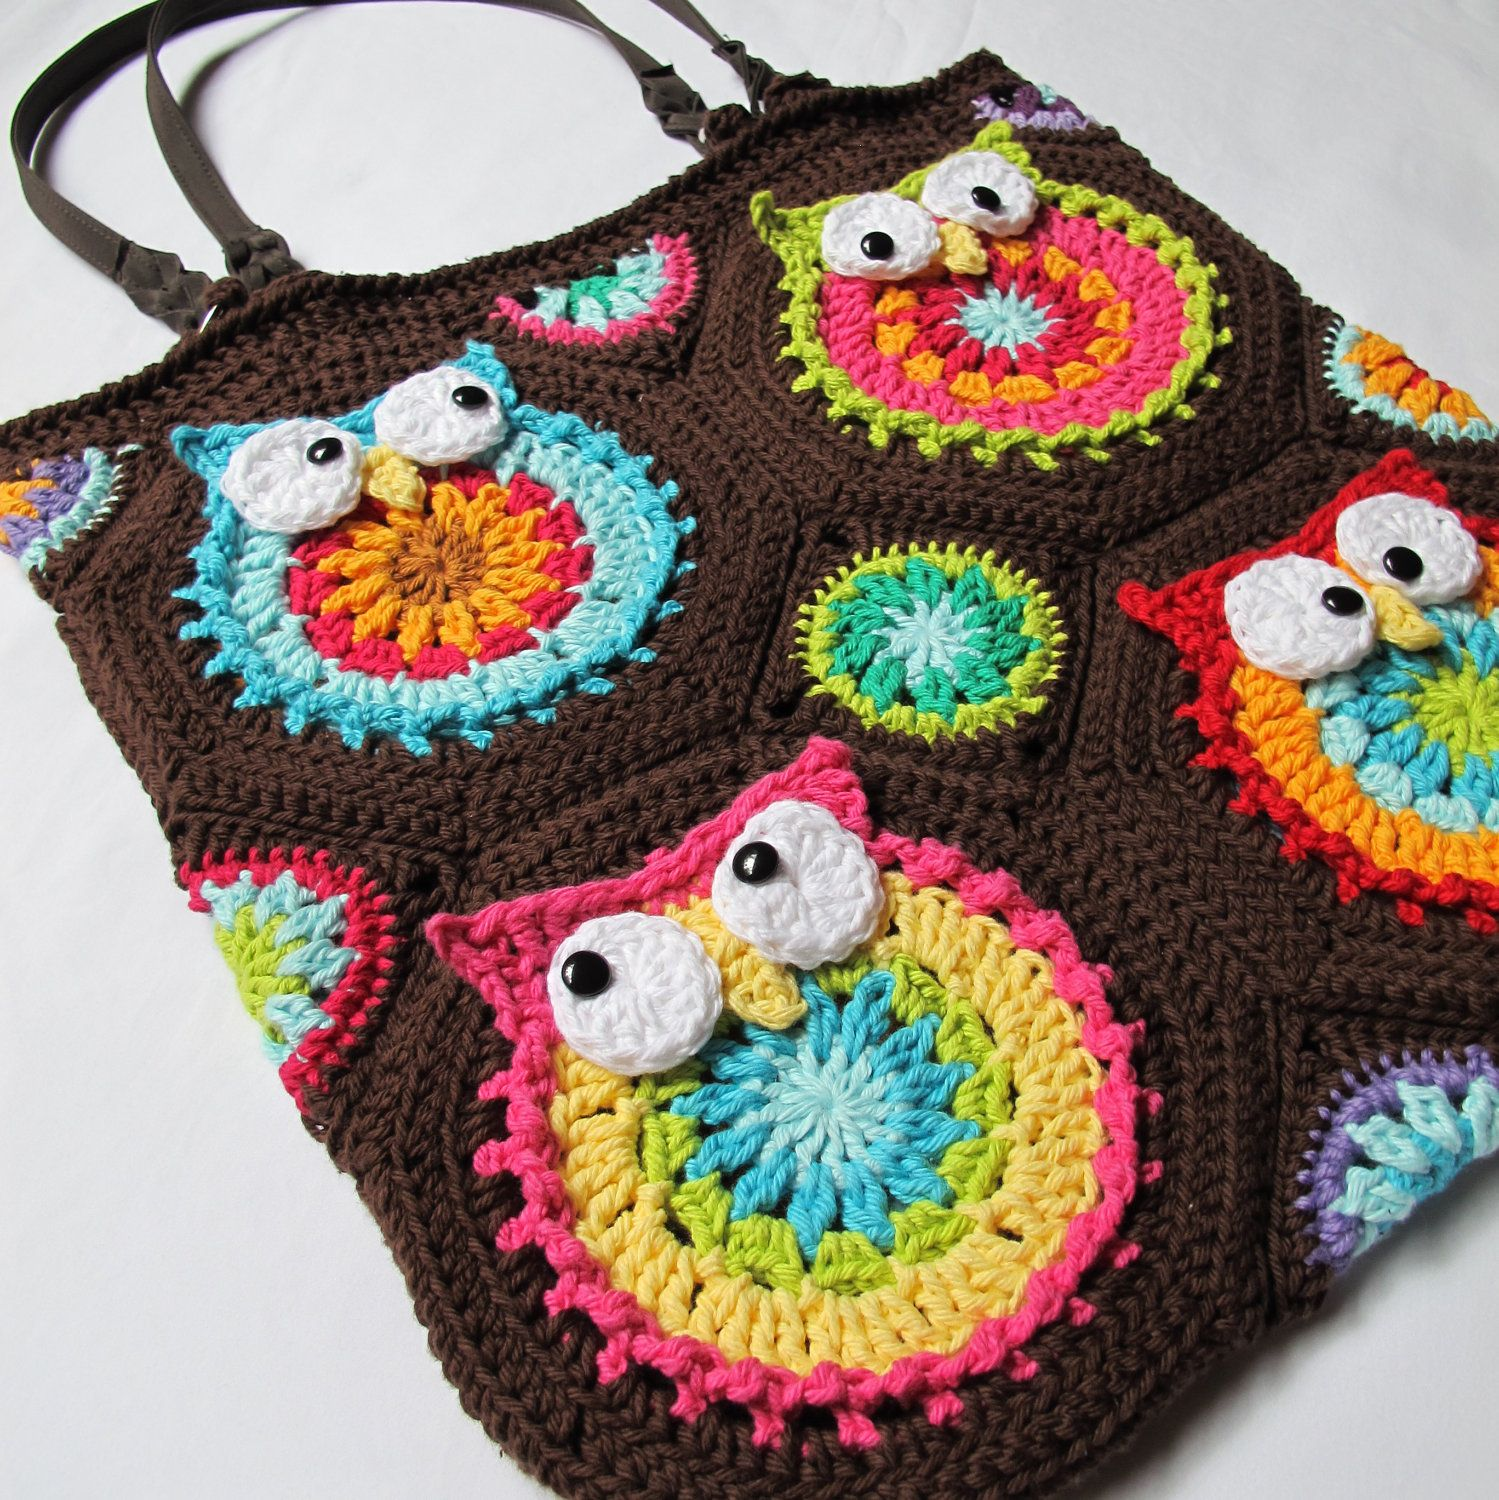 Crochet pattern owl toteem a colorful crochet owl tote crochet pattern owl toteem a colorful crochet owl tote pattern colorful owl bag pattern purse pattern w owls instant pdf download bankloansurffo Image collections